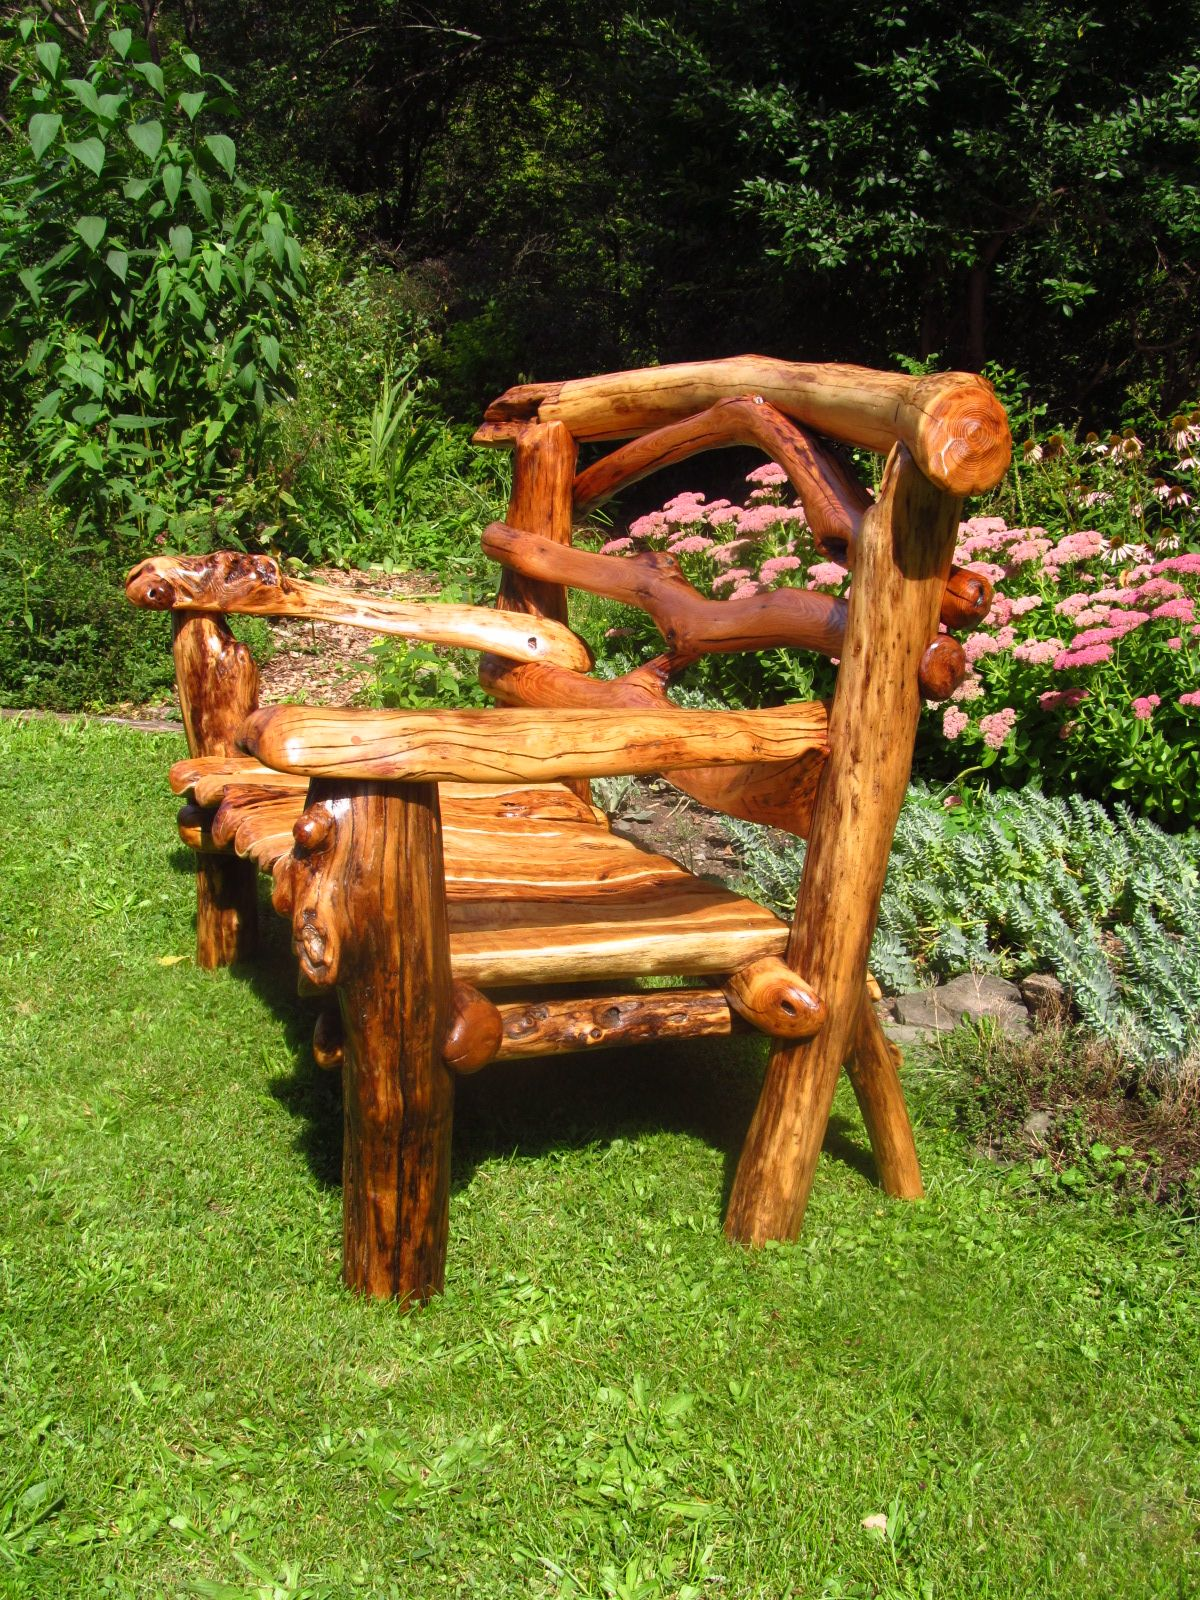 Split limb Black Locust bench can stay outdoors due to the high